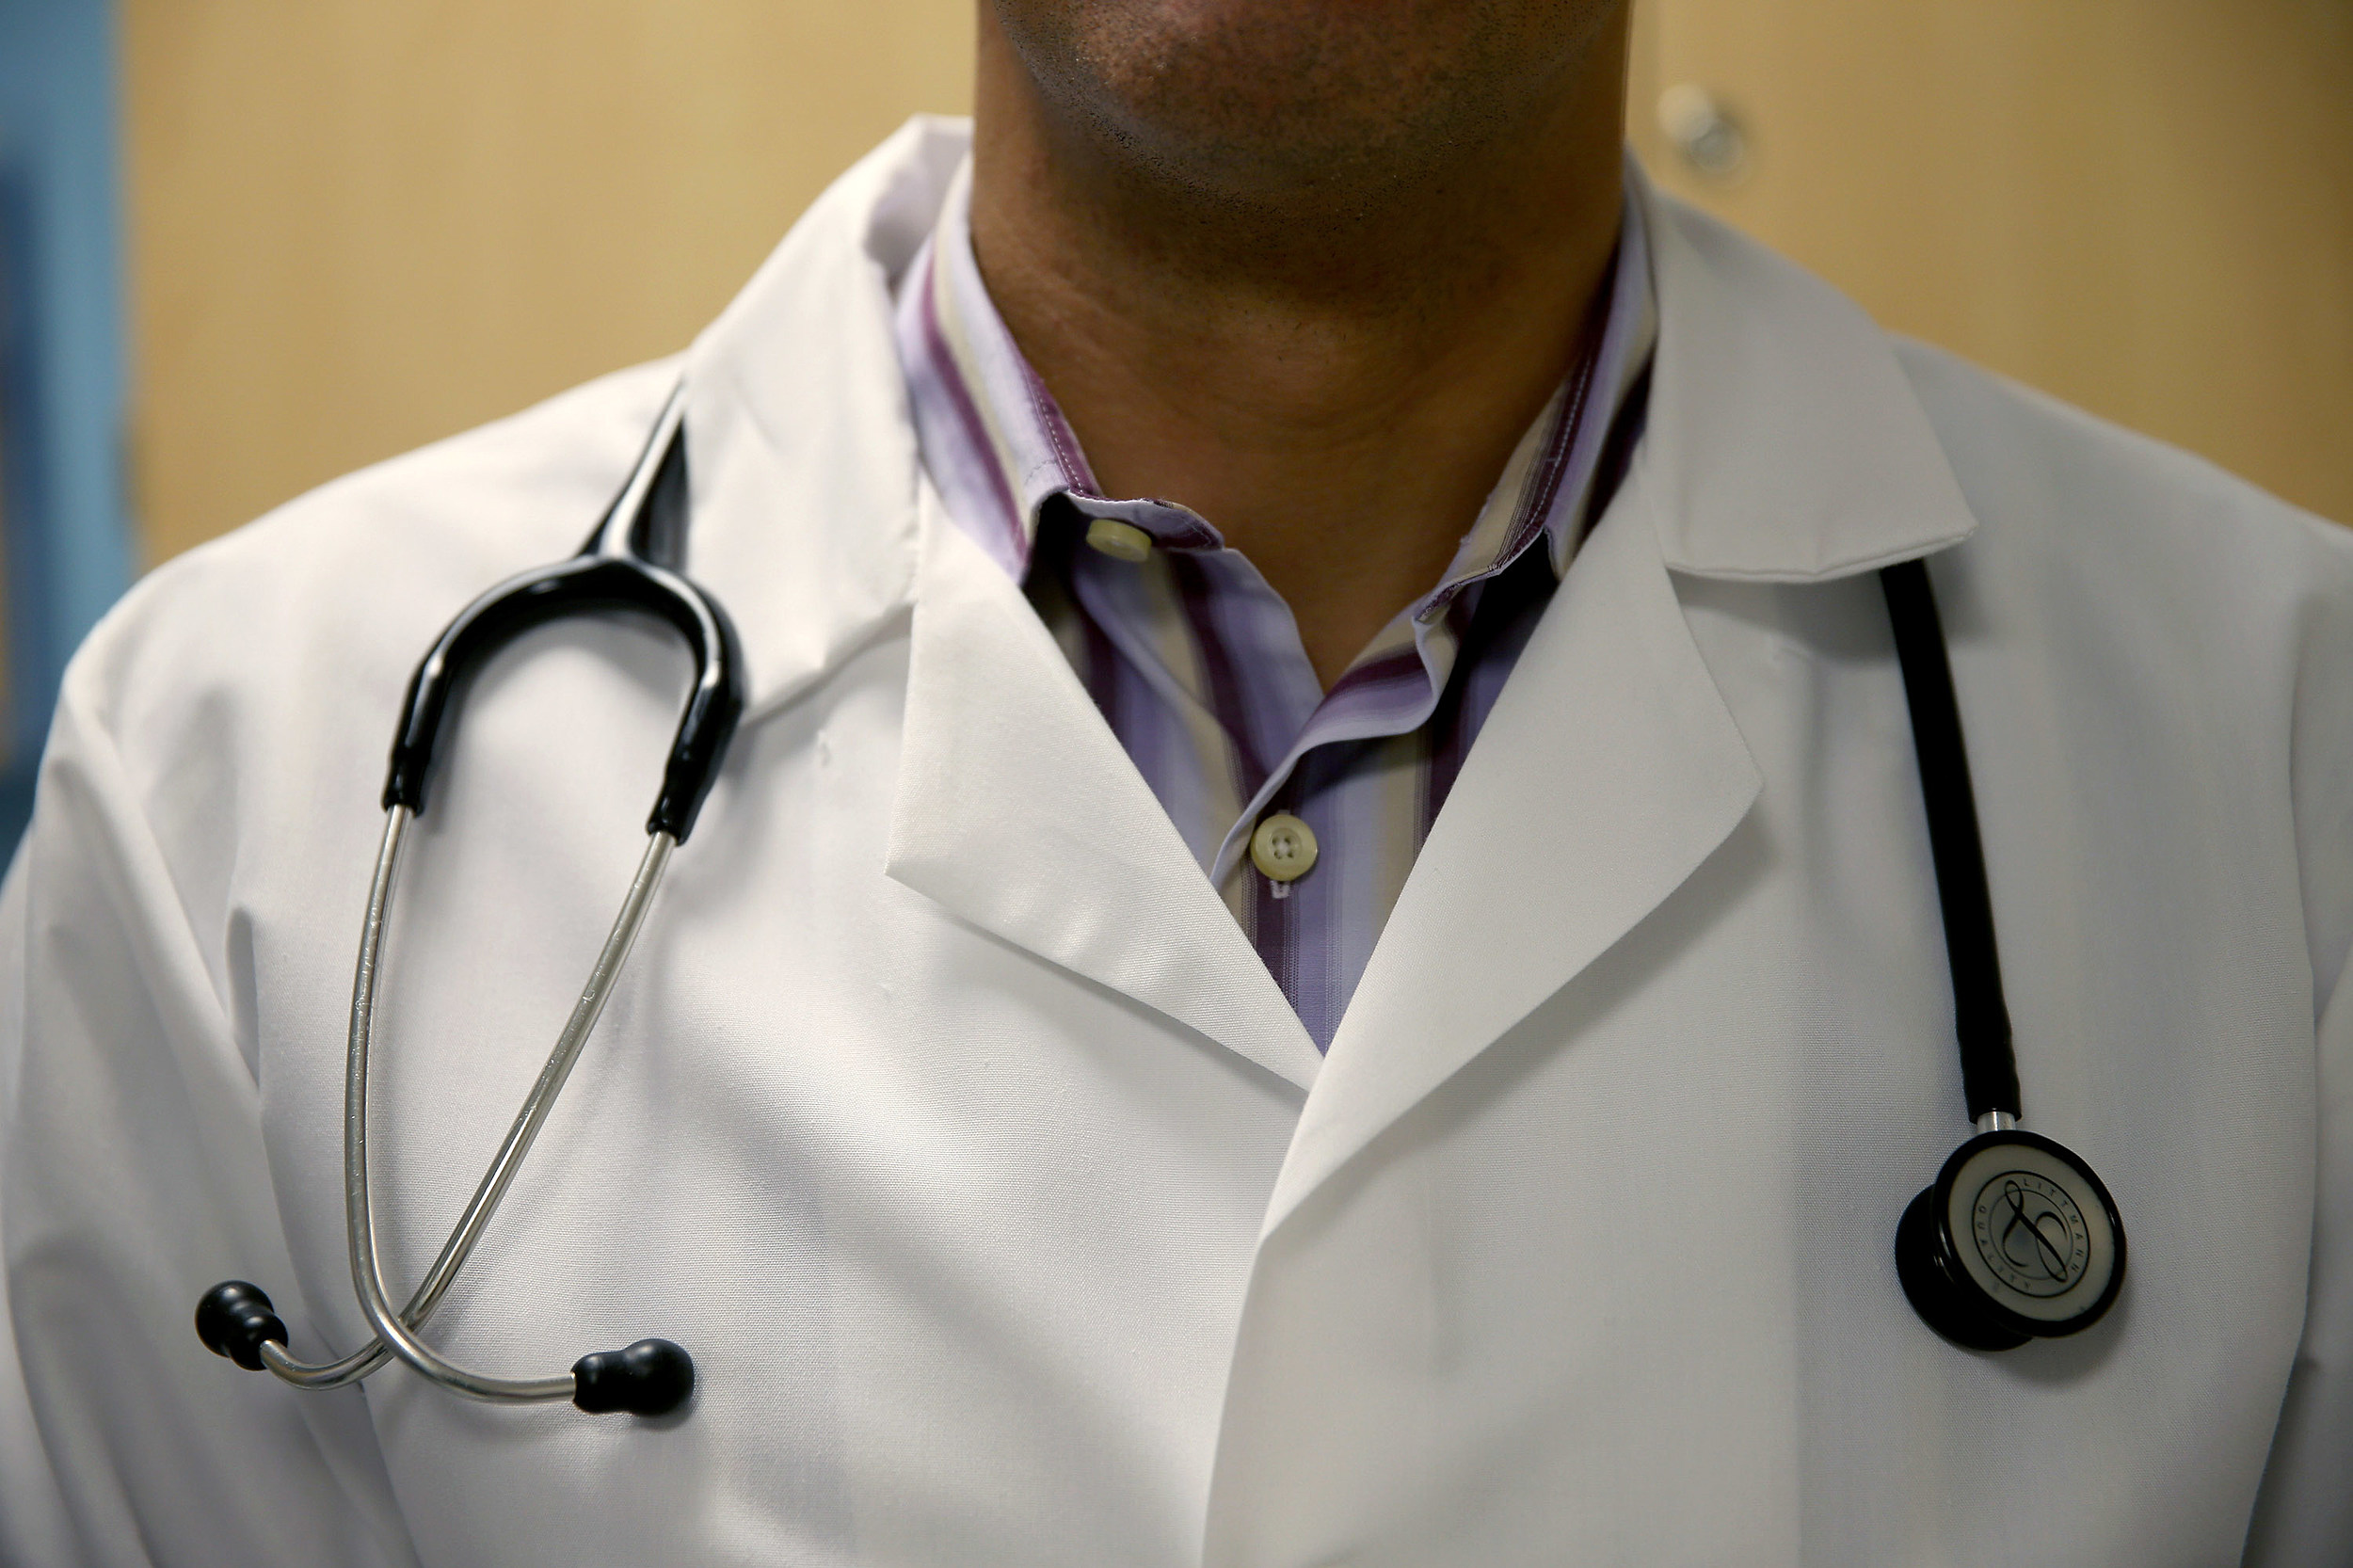 A doctor wears a stethoscope